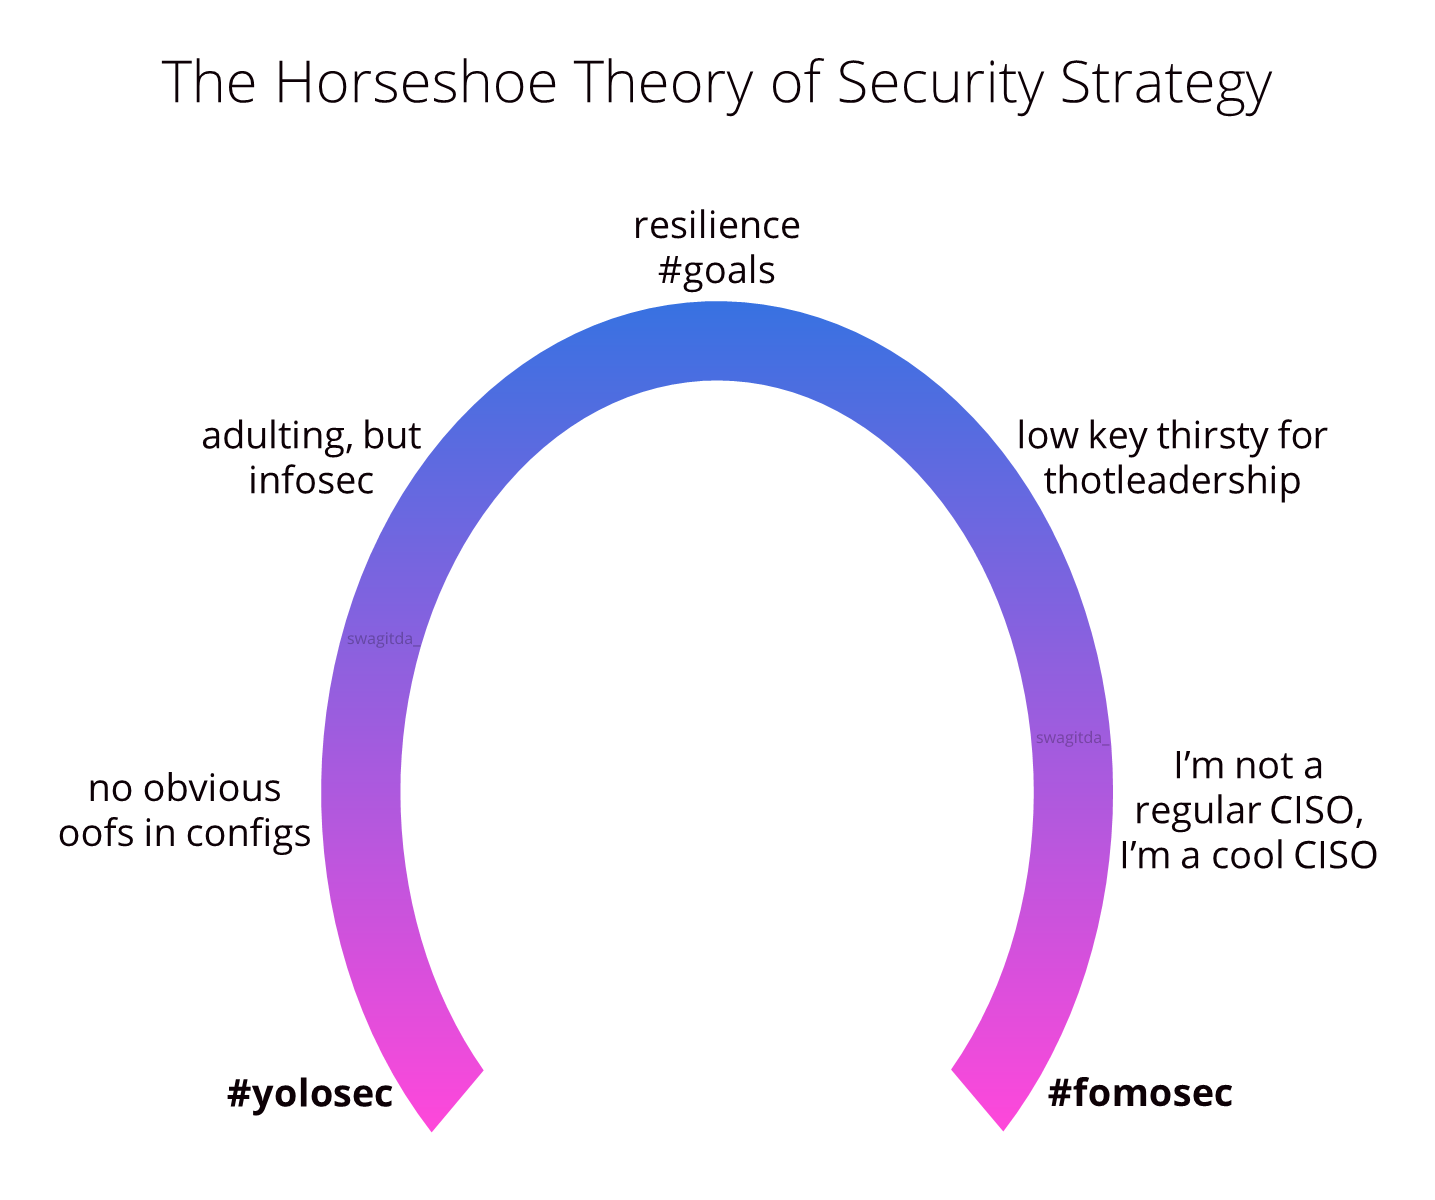 The Horseshoe Theory of Security Strategy by Kelly Shortridge